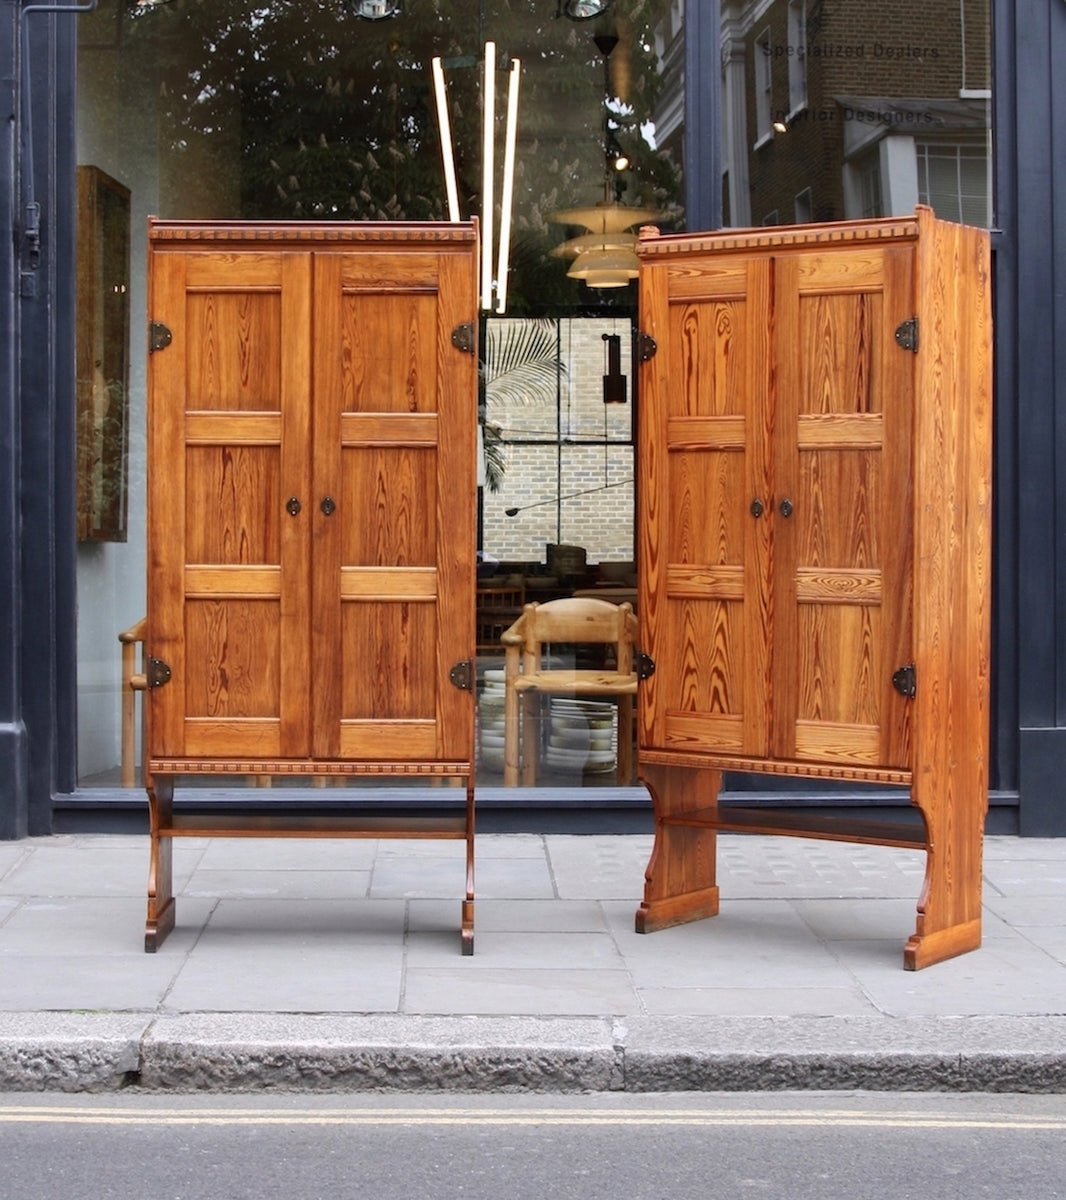 Skønvirke Cabinets Martin Nyrop - Danish art nuveau martin nyrup Copenhagen town hall custom made furniture gesamtkunstwerk early 20th century furniture pine patina aged pair of cabinets